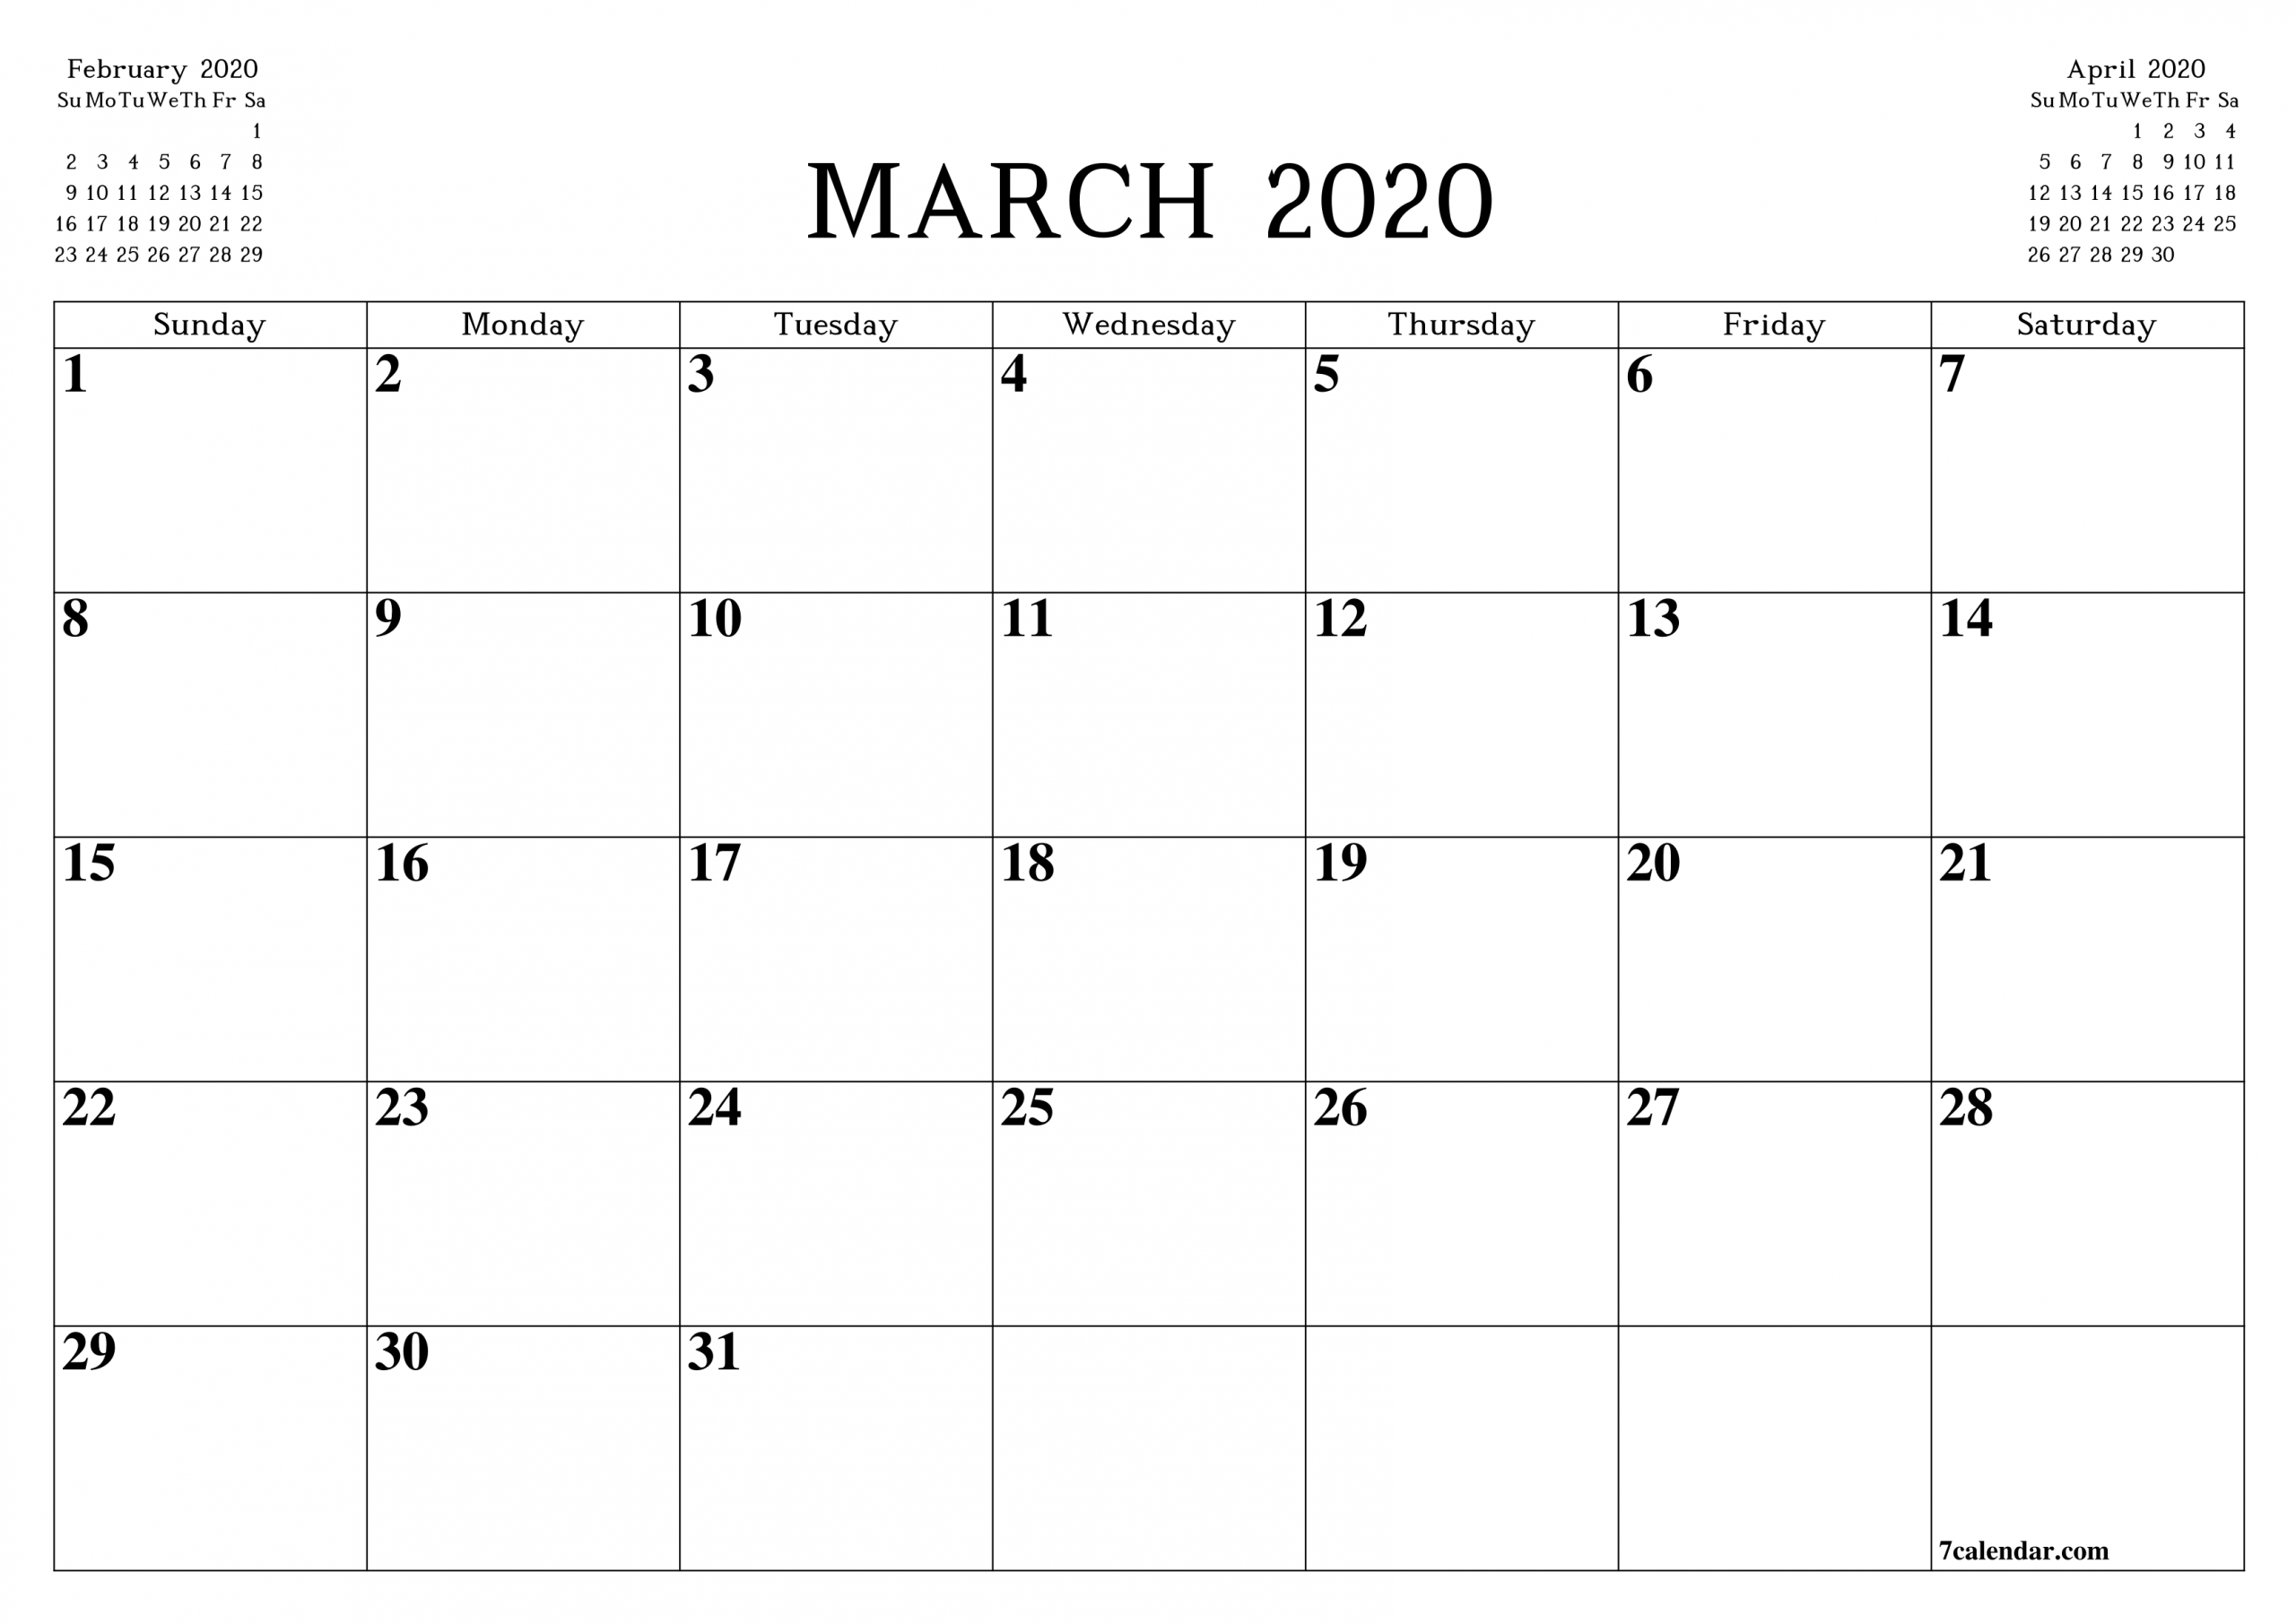 Printable Blank Monthly Planner For March 2020 - A4, A5 And